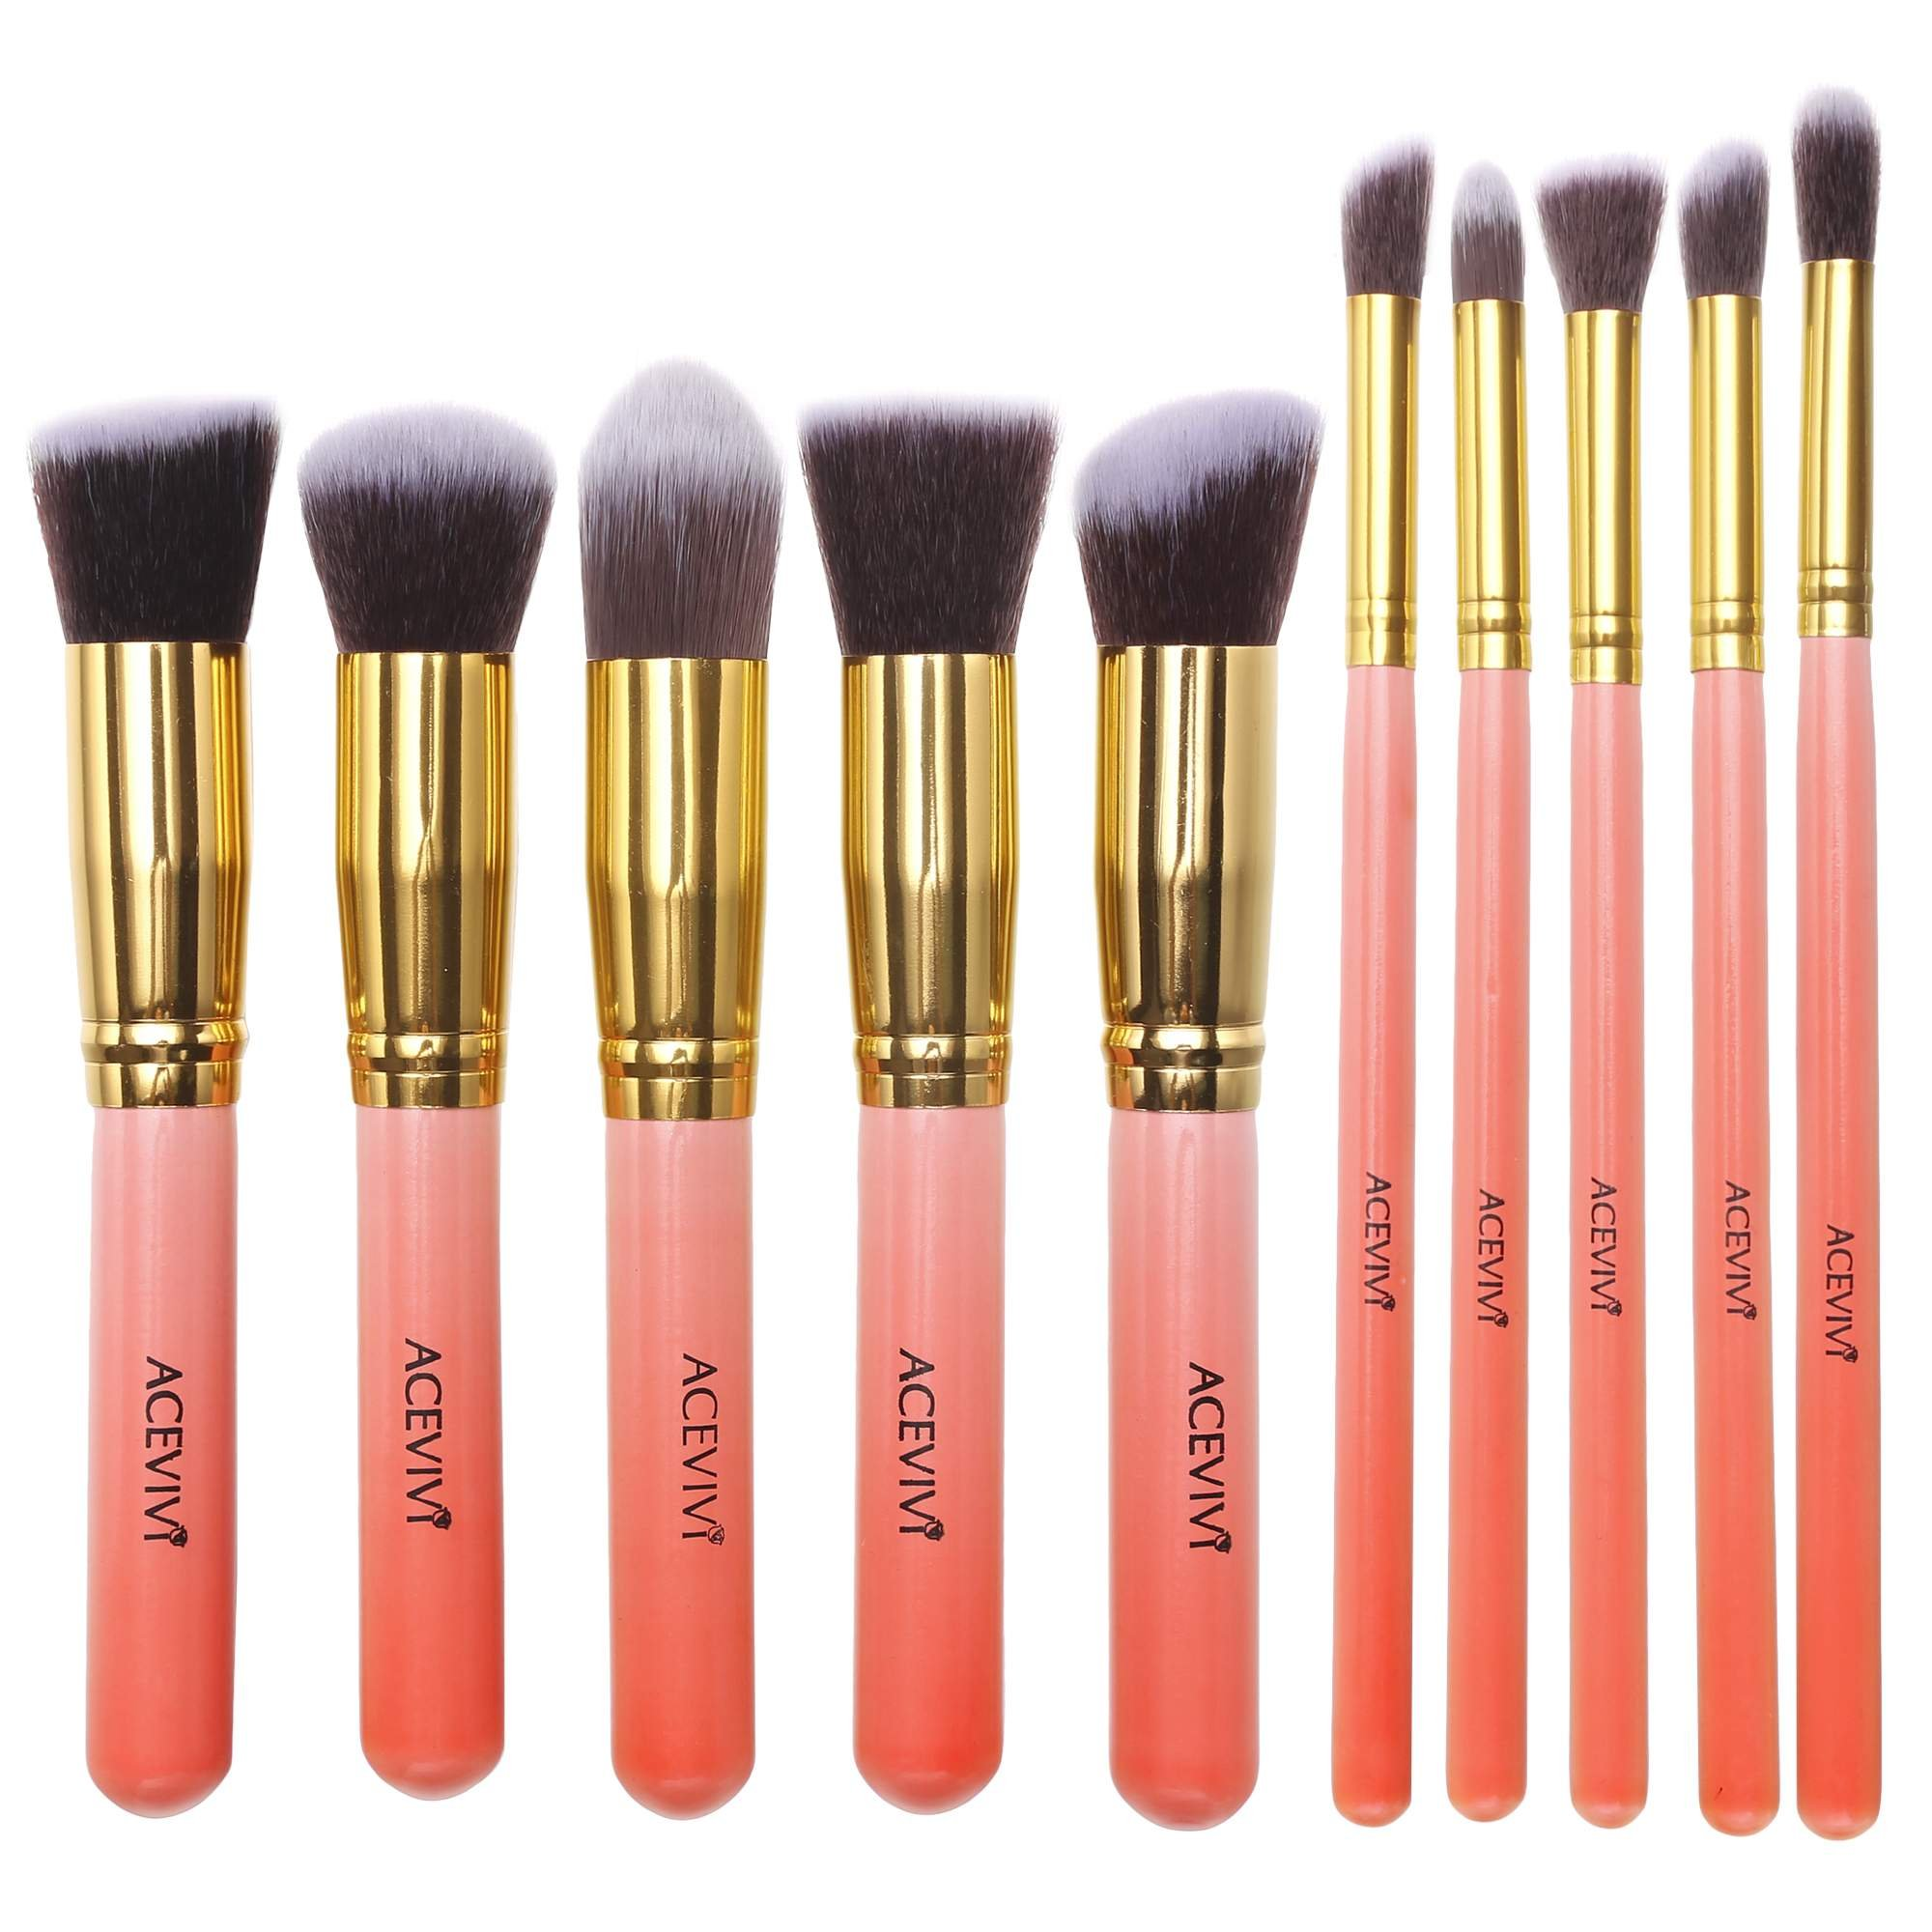 ACEVIVI Makeup Brushes - 10 PIECE Premium Makeup Brush Kit Bamboo Handle Synthetic Kabuki Foundation Cosmetic Brushes for Powder Liquid Cream